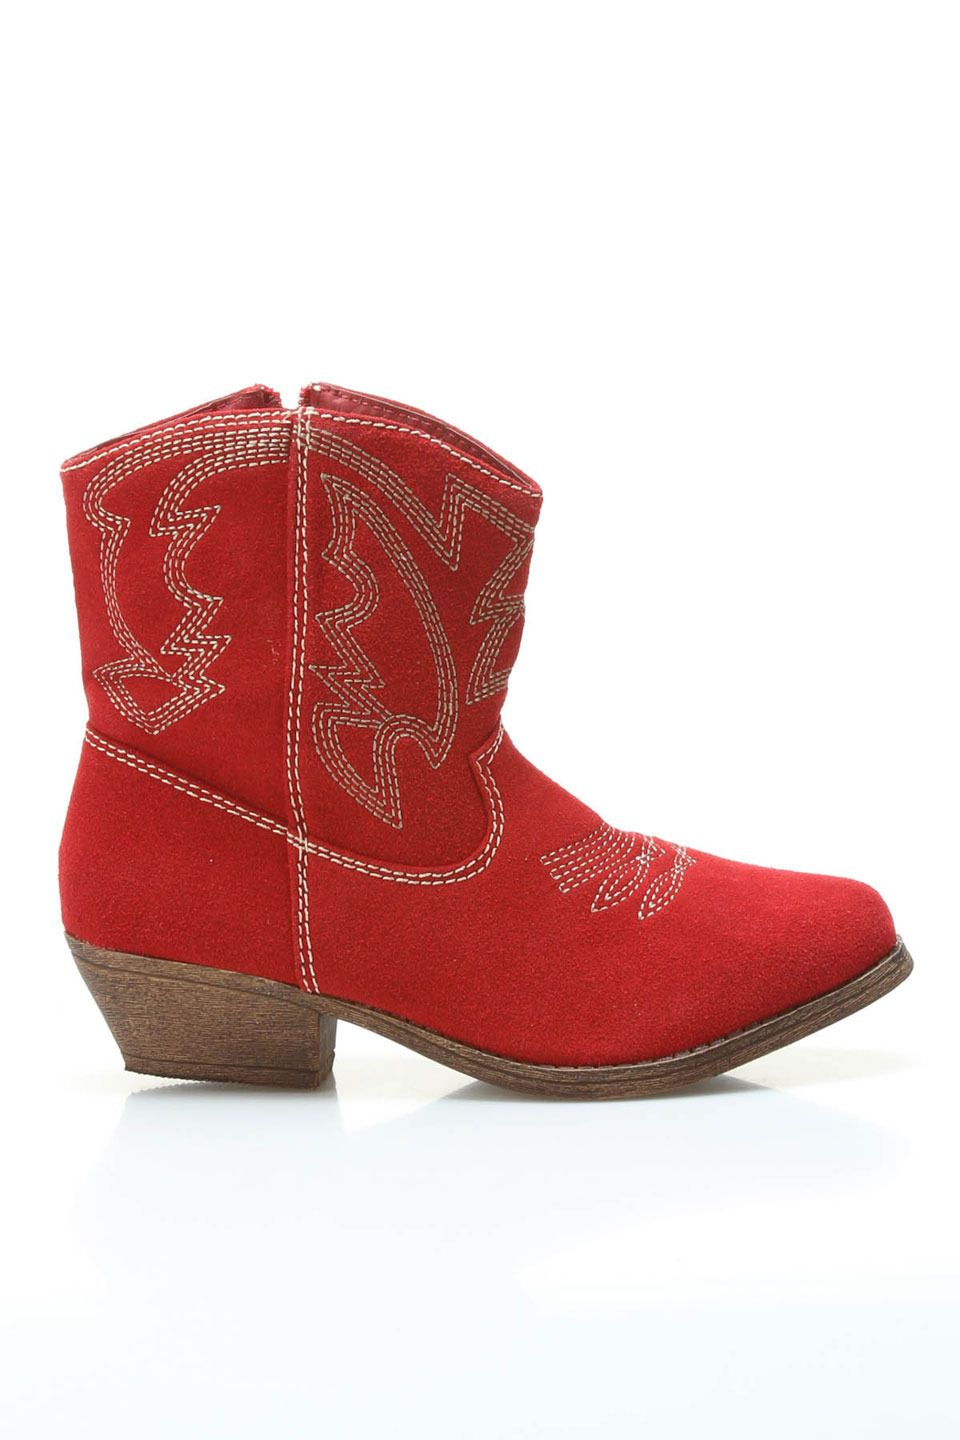 e0b59d3e9ff8 Cowboy Boots In Red.